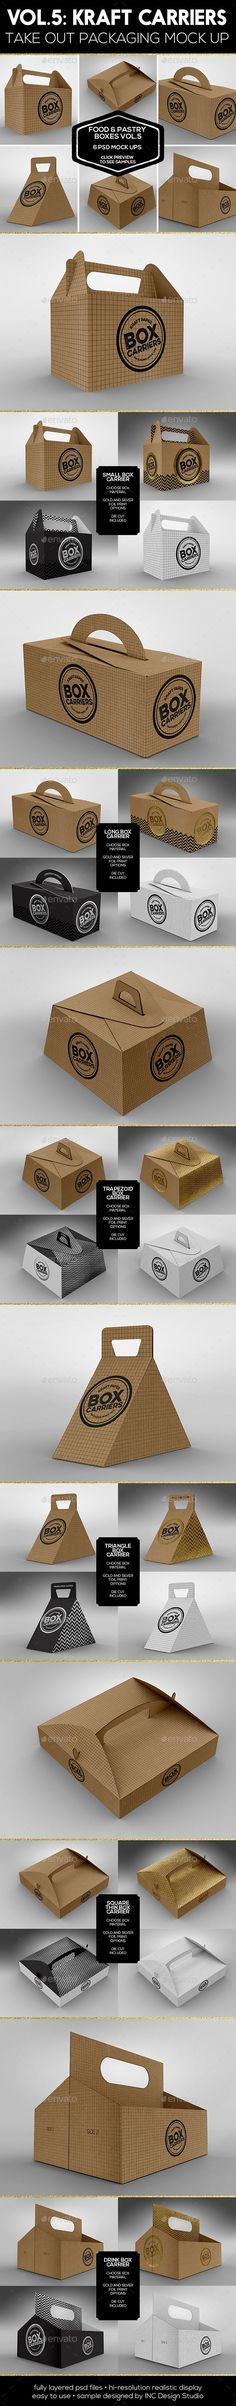 So, my dears, feel free to dive into this wonderful collection of Cool Paper Gift Boxes That Will Blow Your Mind and share your comments with us.